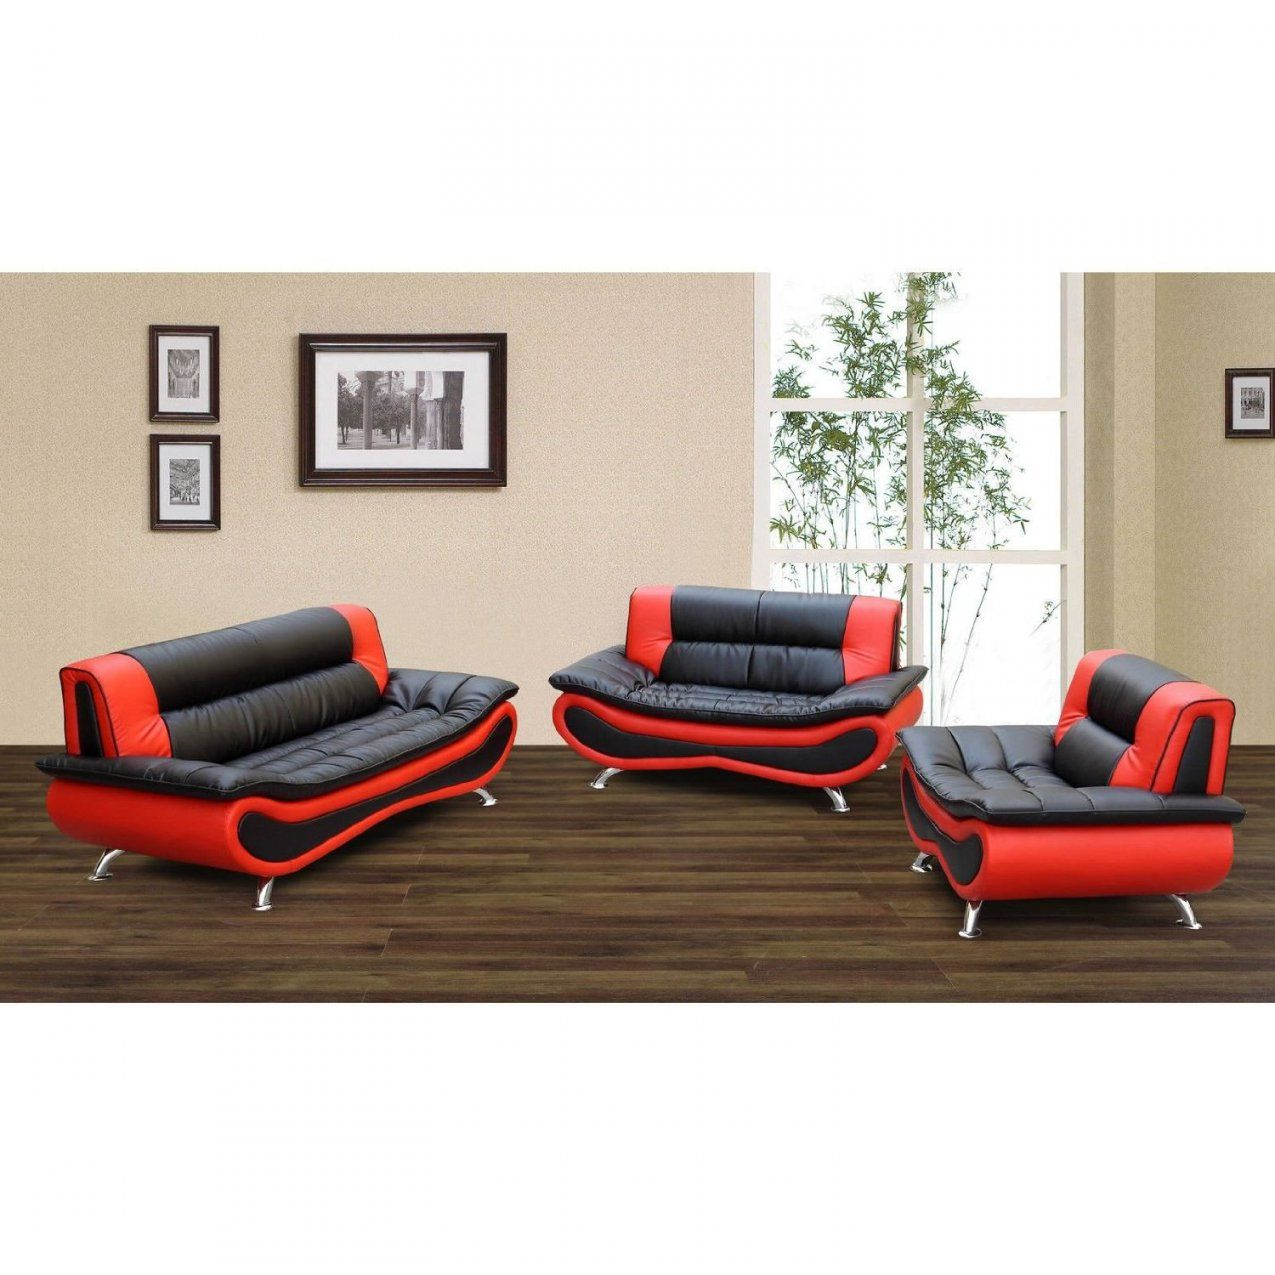 Red And Black Furniture For Living Room Luxury Firestone Red Black 2 von Red And Black Furniture Photo